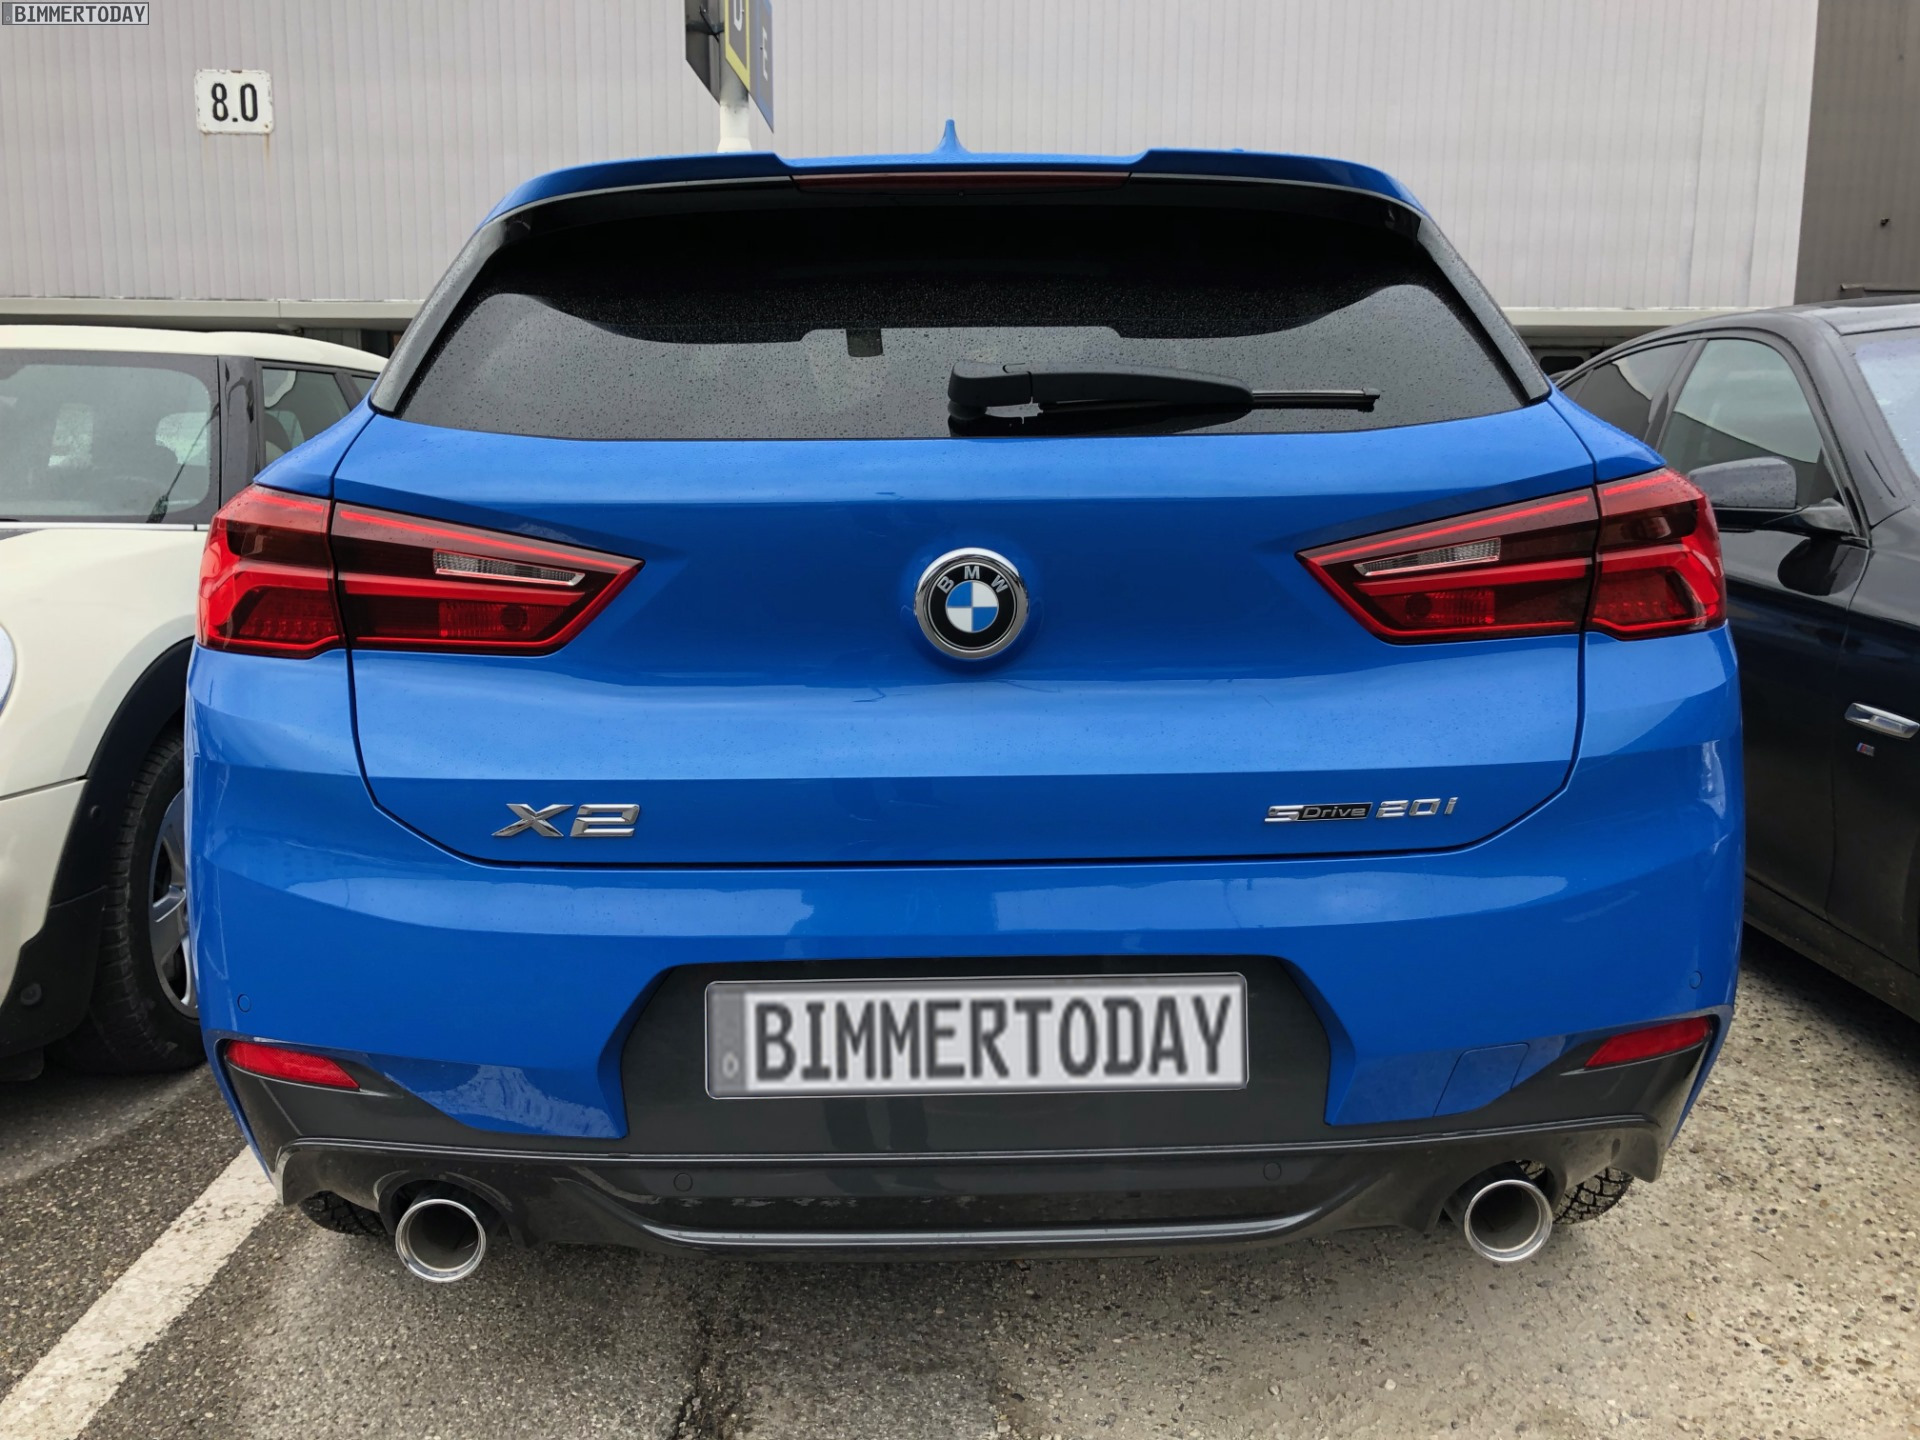 Live Photos Of The Bmw X2 Spotted In Germany